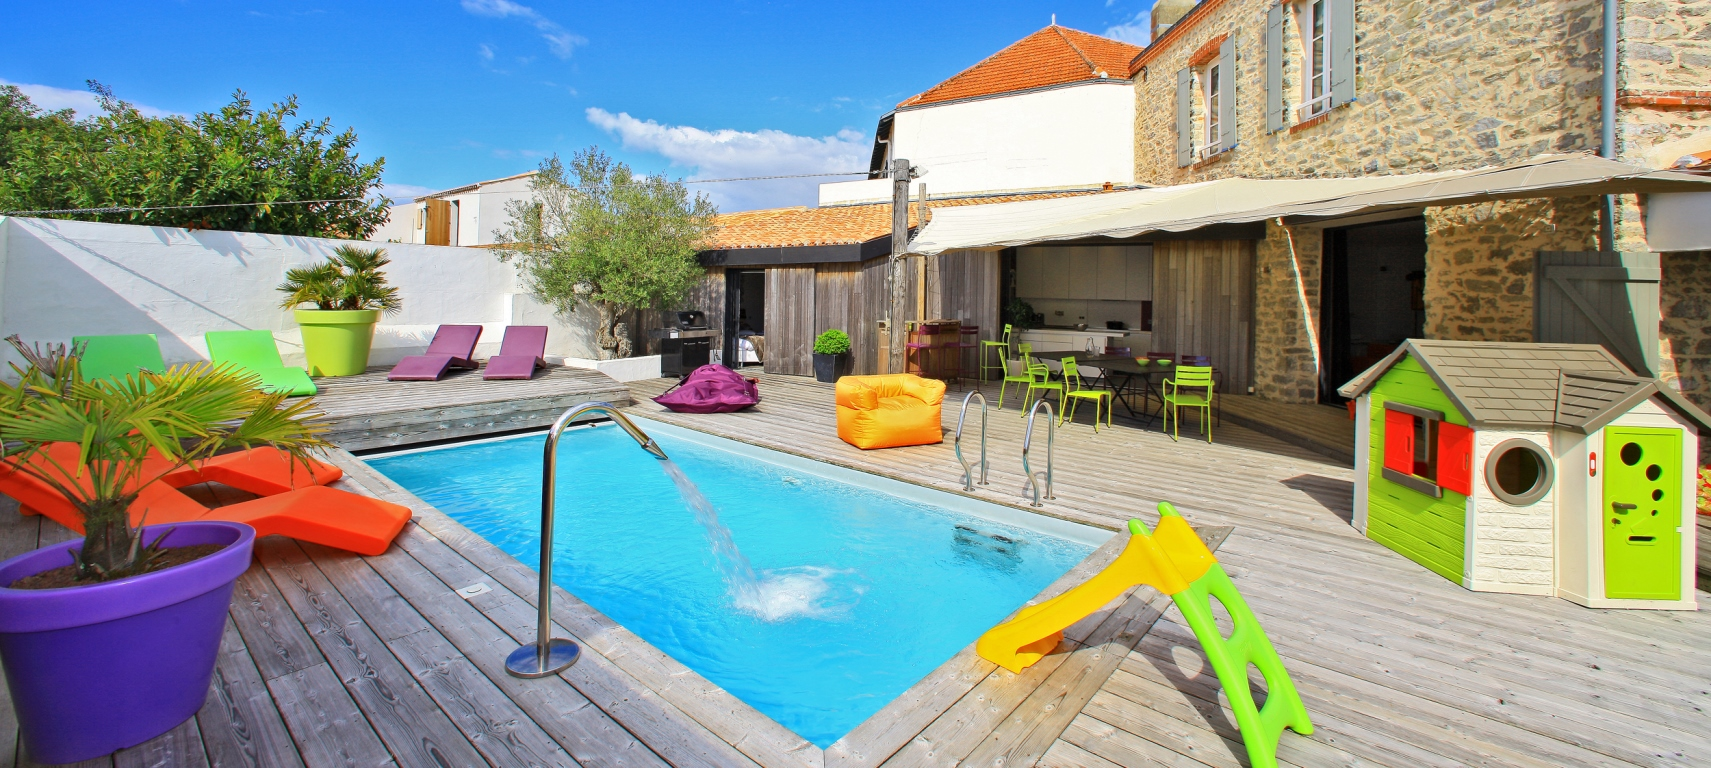 Location avec piscine privative en Vendée